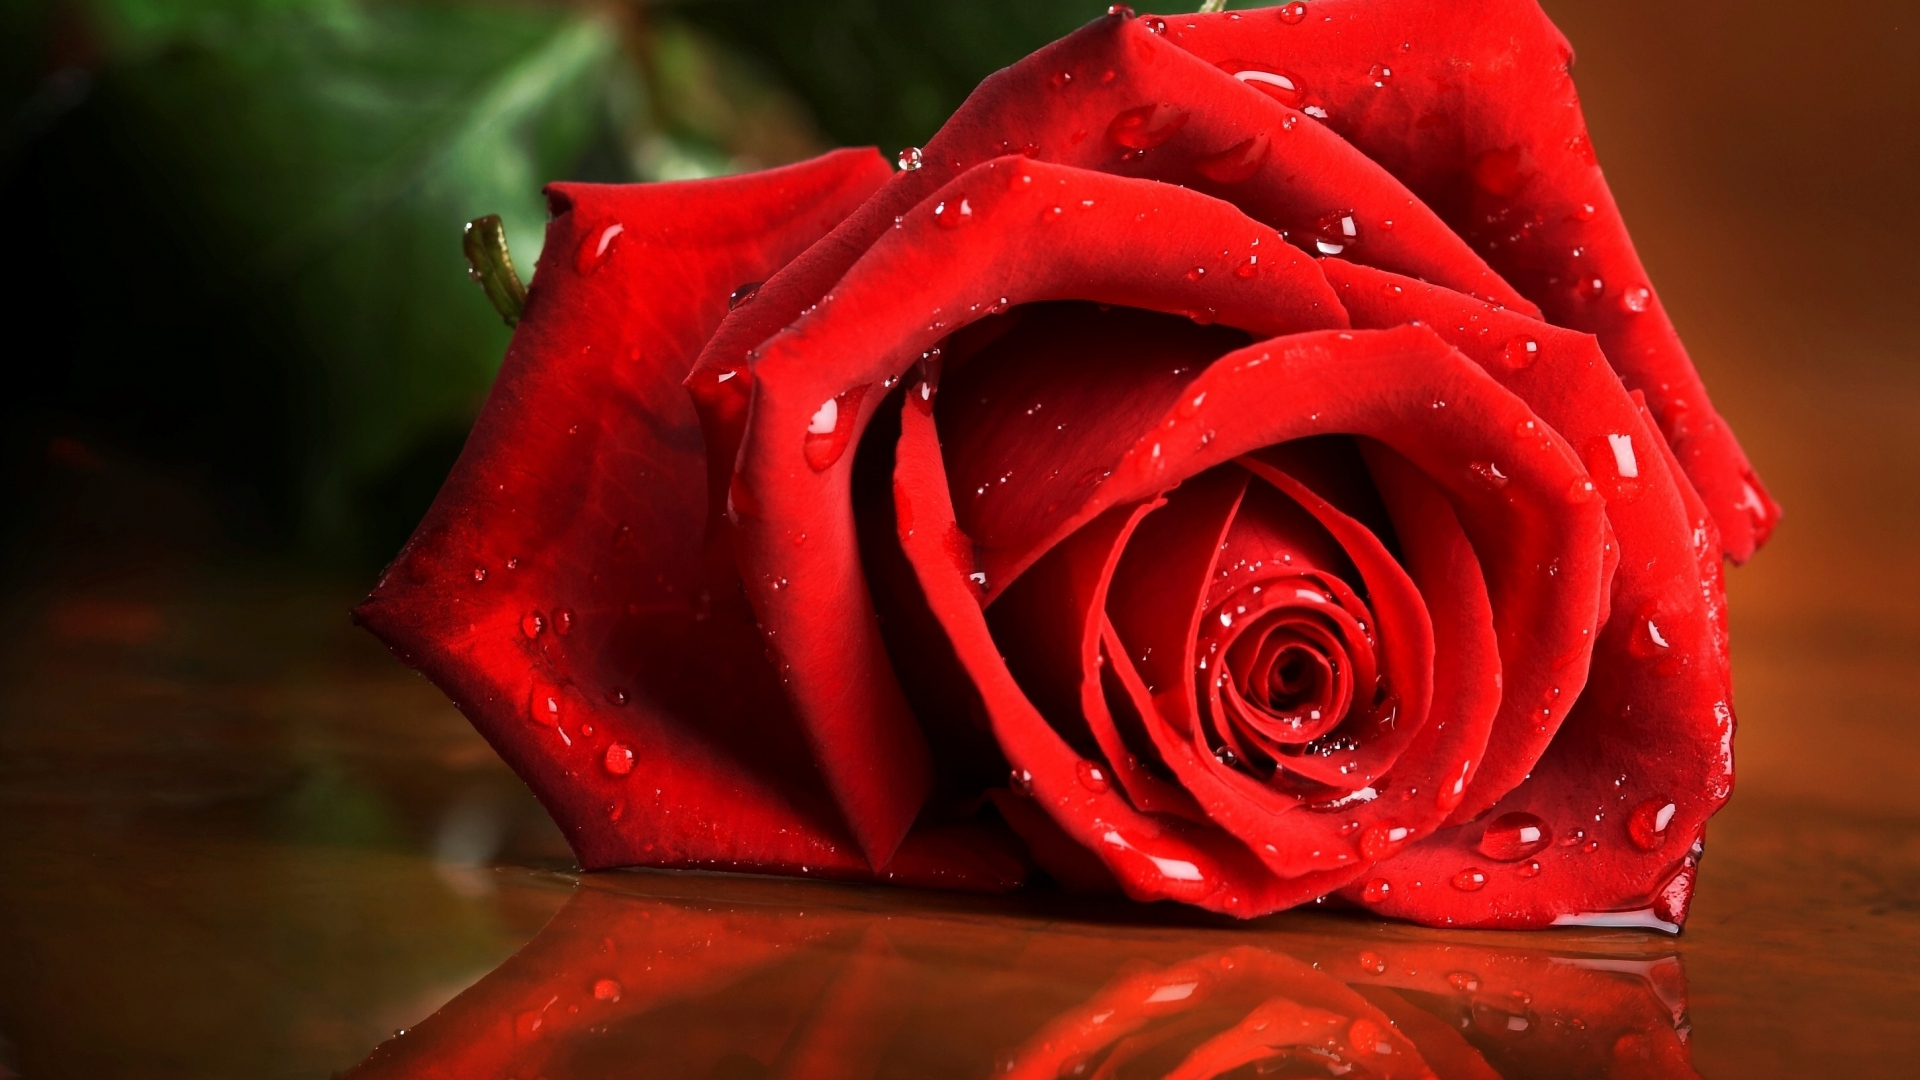 Get The Latest Red Rose Drops News Pictures And Videos Learn All About From Wallpapers4uorg Your Wallpaper Source